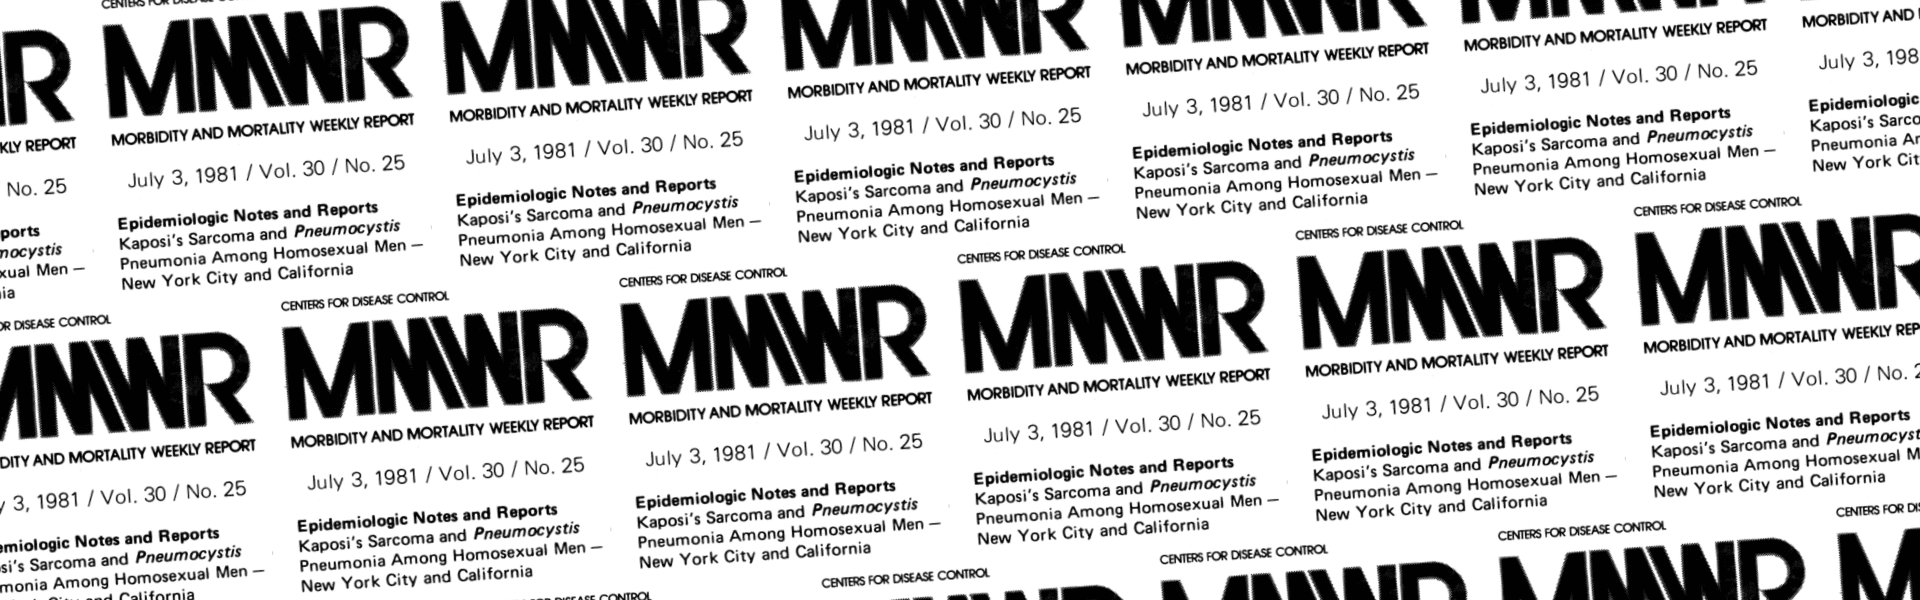 Morbidity and mortality weekly report (MMWR) v30, n25, 3 July 1981, Periodical Collection